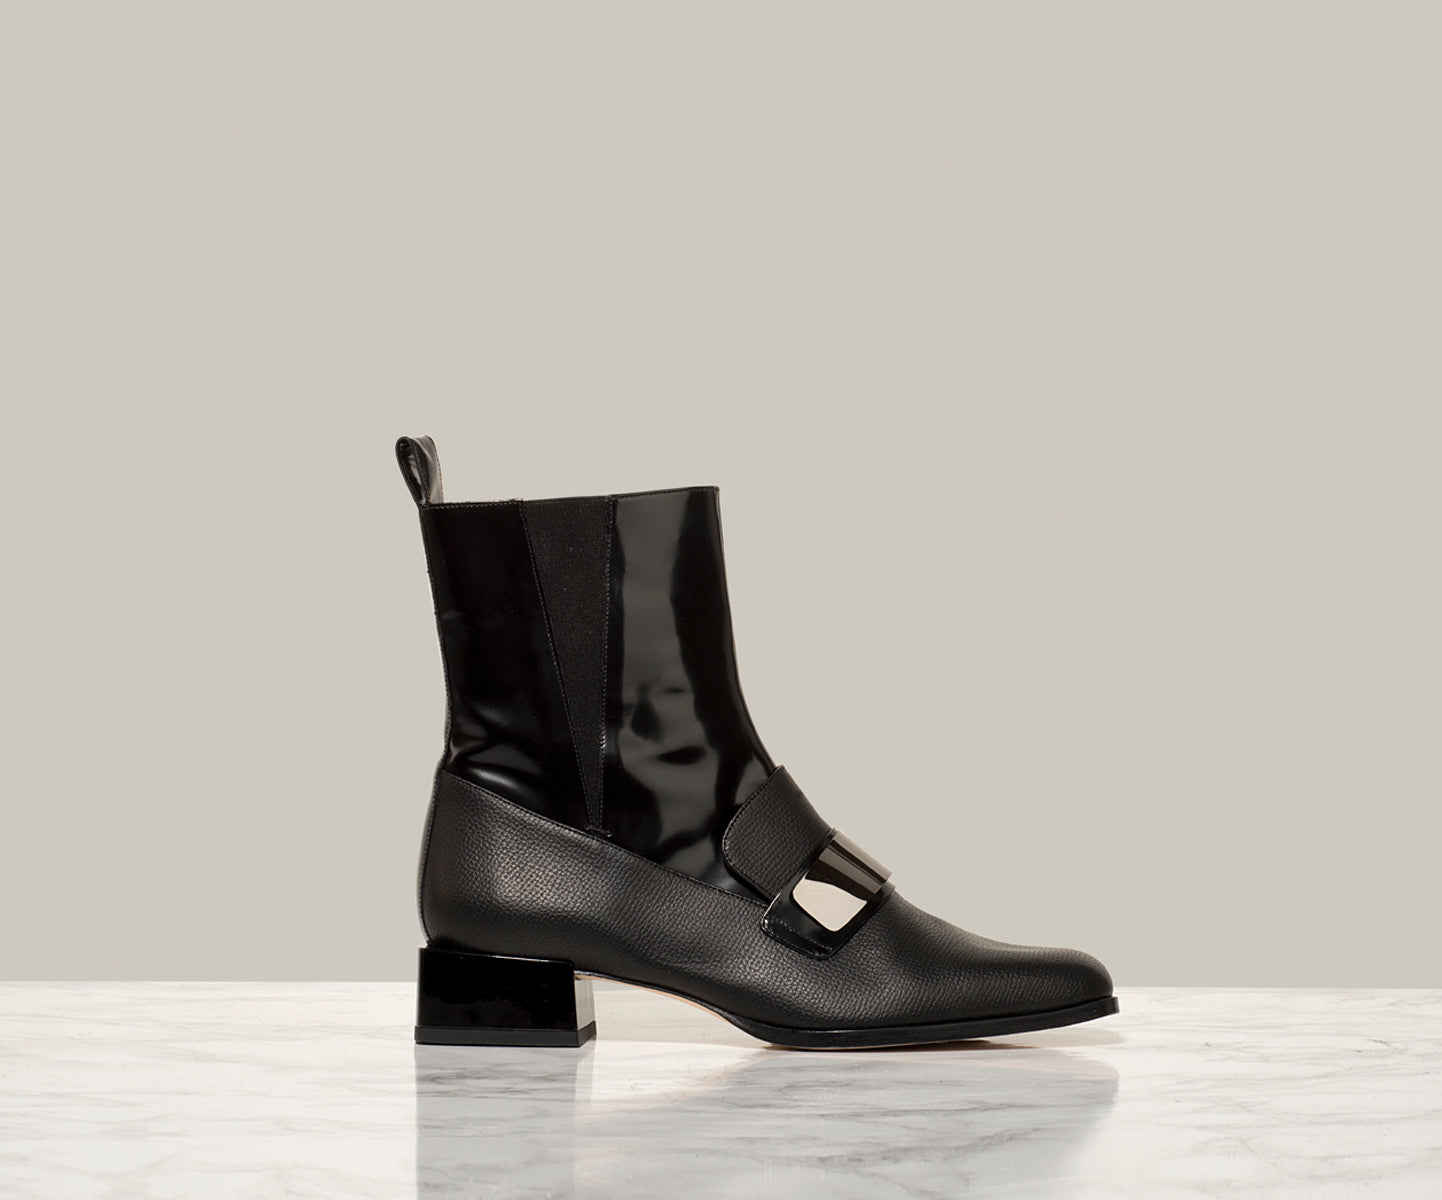 TUX LOAFER BOOT, Black Grain